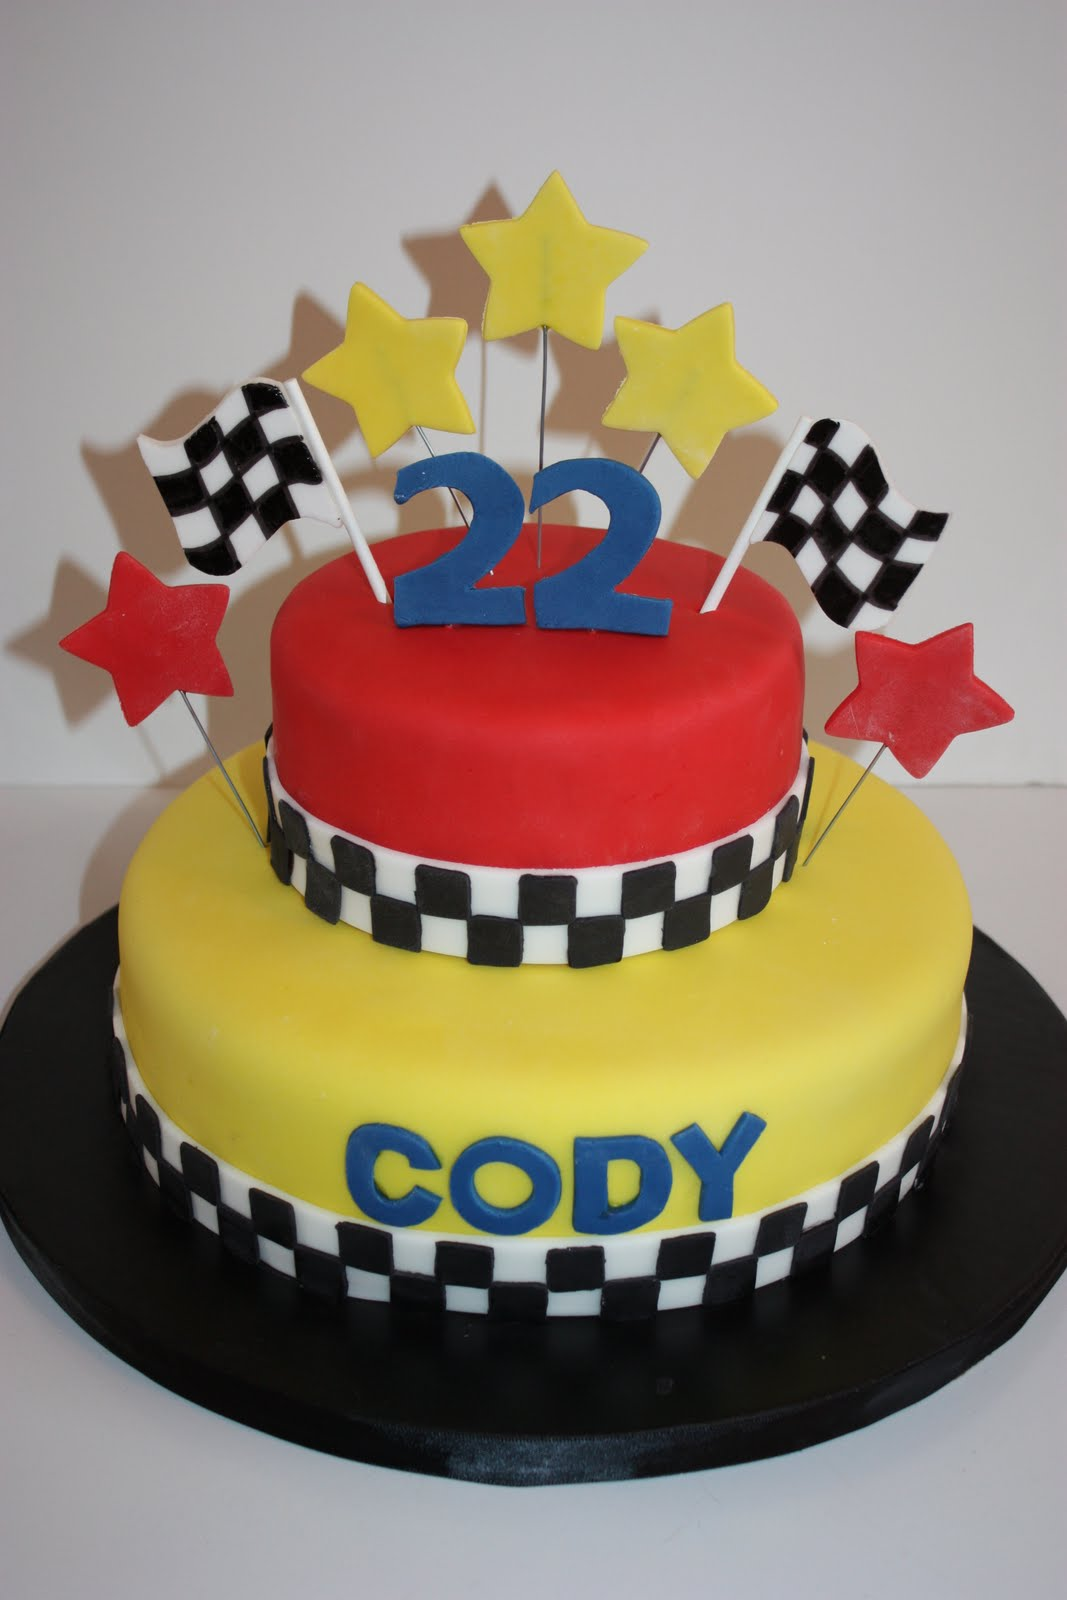 11 Photos of Racing Cakes Anniversary